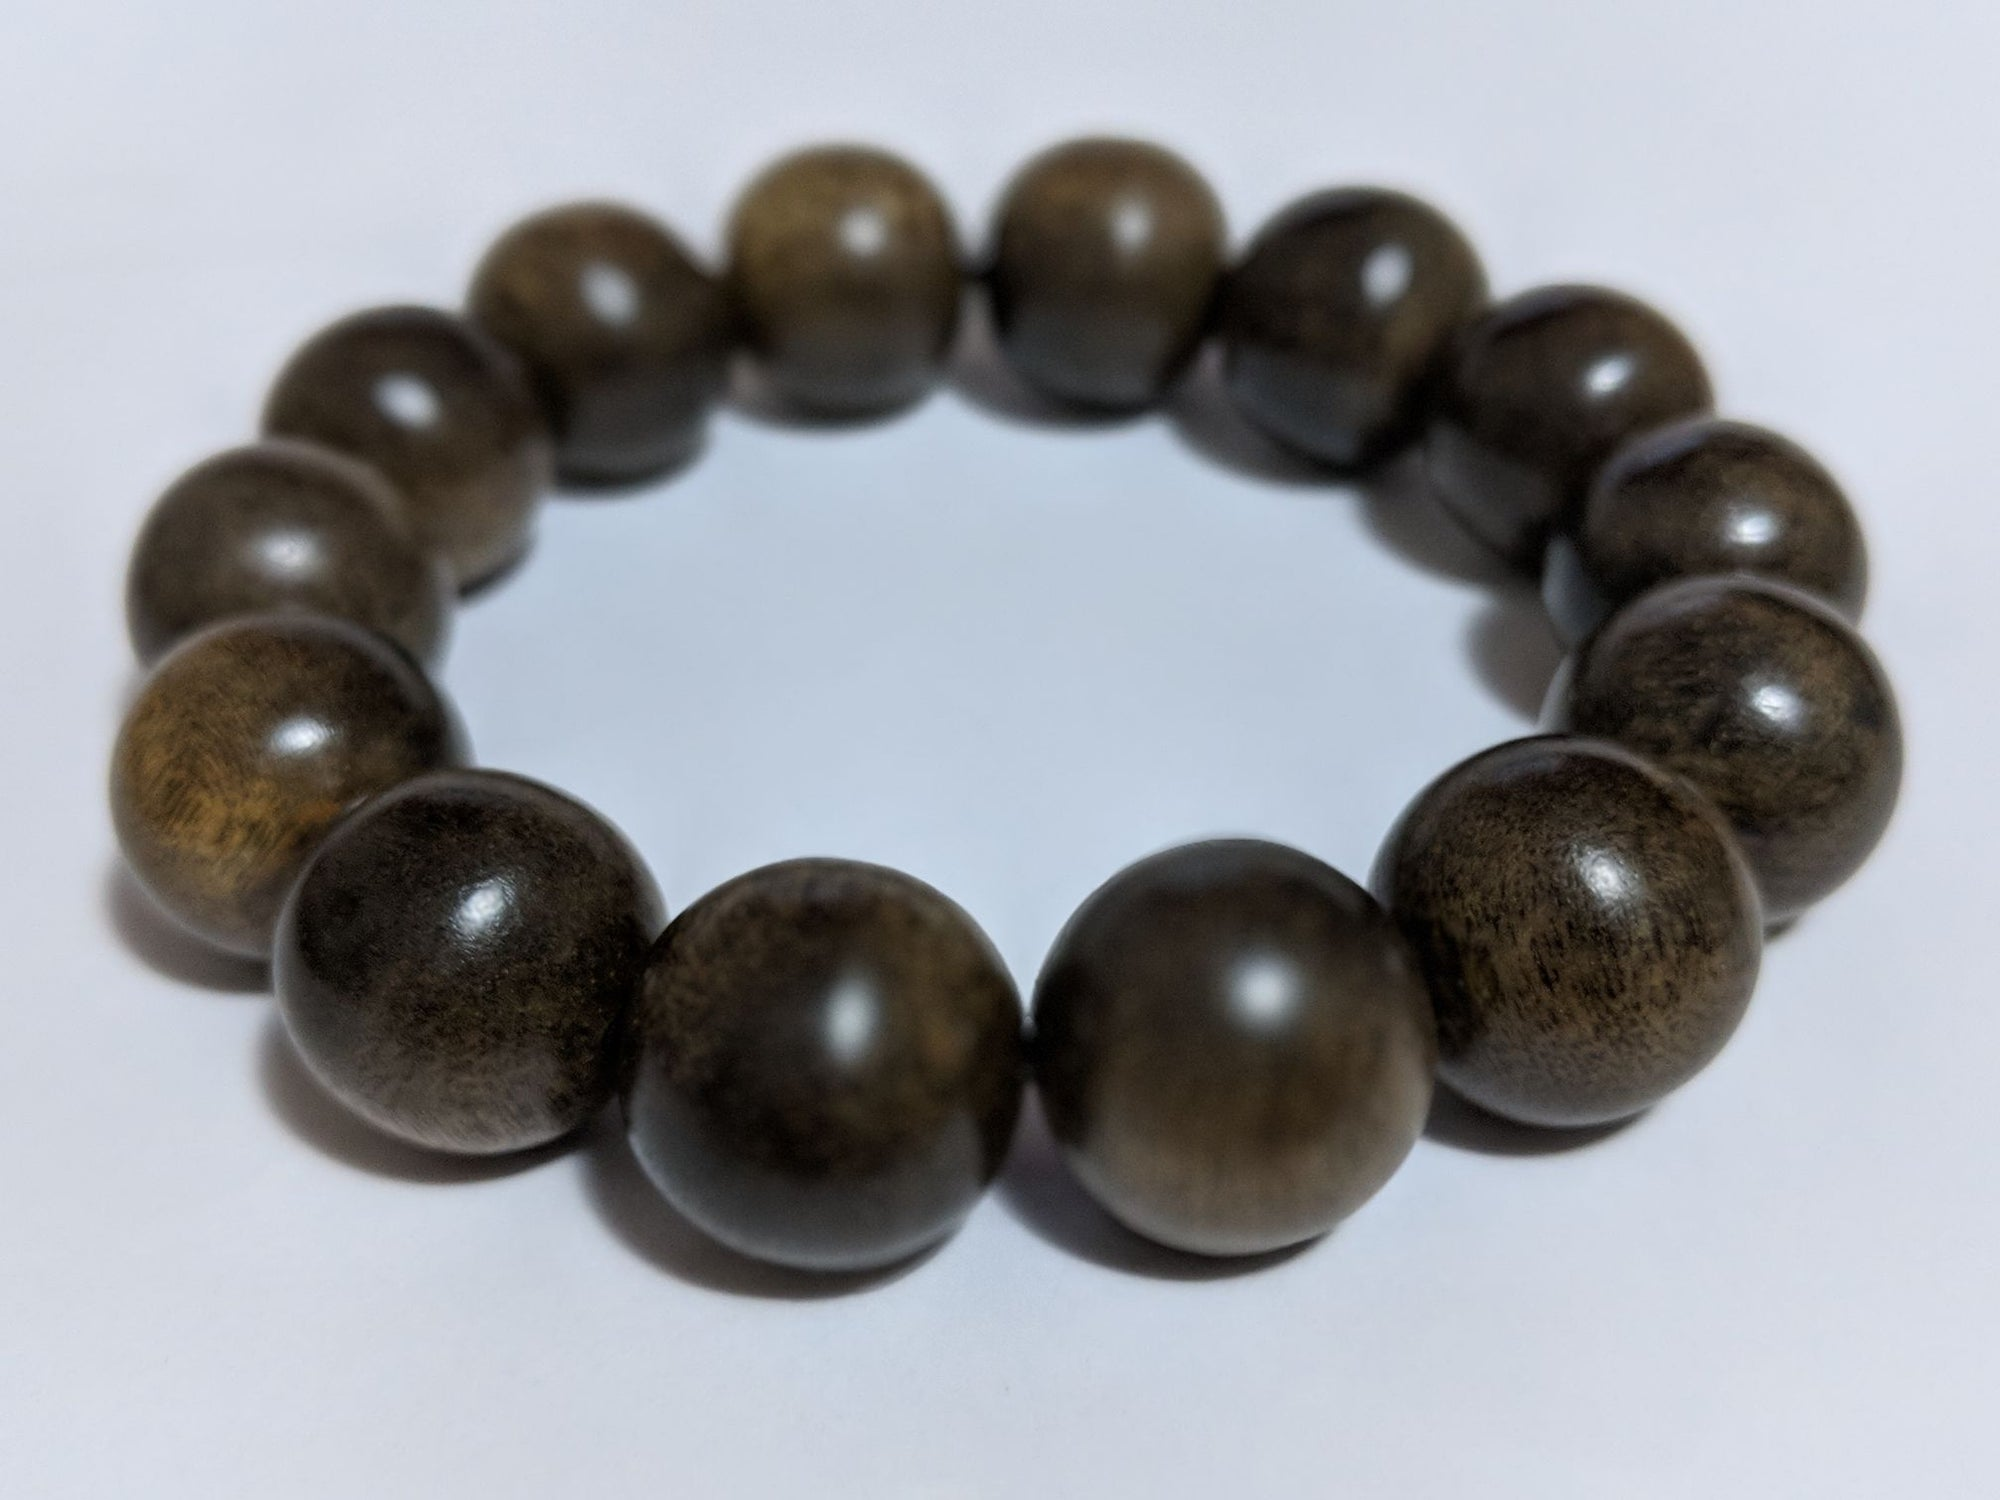 SOLD Wild Agarwood Bracelet made from heart wood 16mm 14 beads 32g - The Moonless - Grandawood- Agarwood Australia